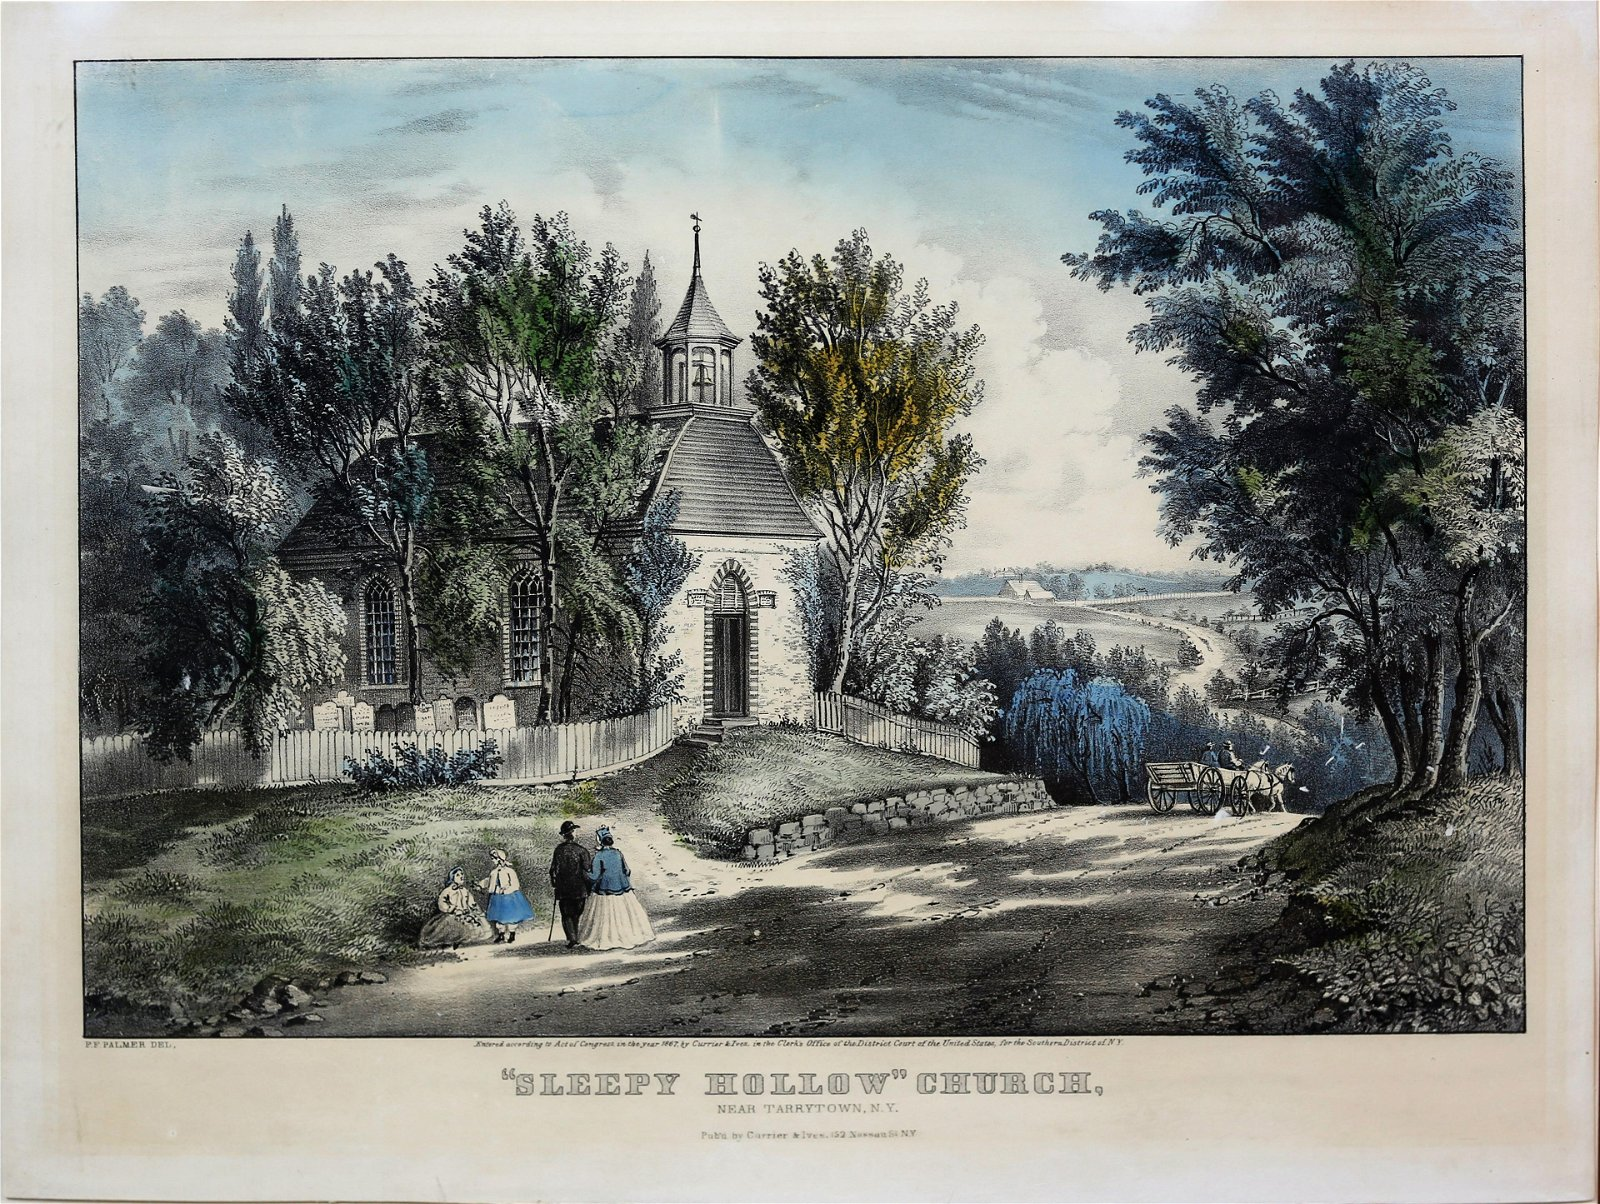 Currier & Ives Lithograph of Sleepy Hollow